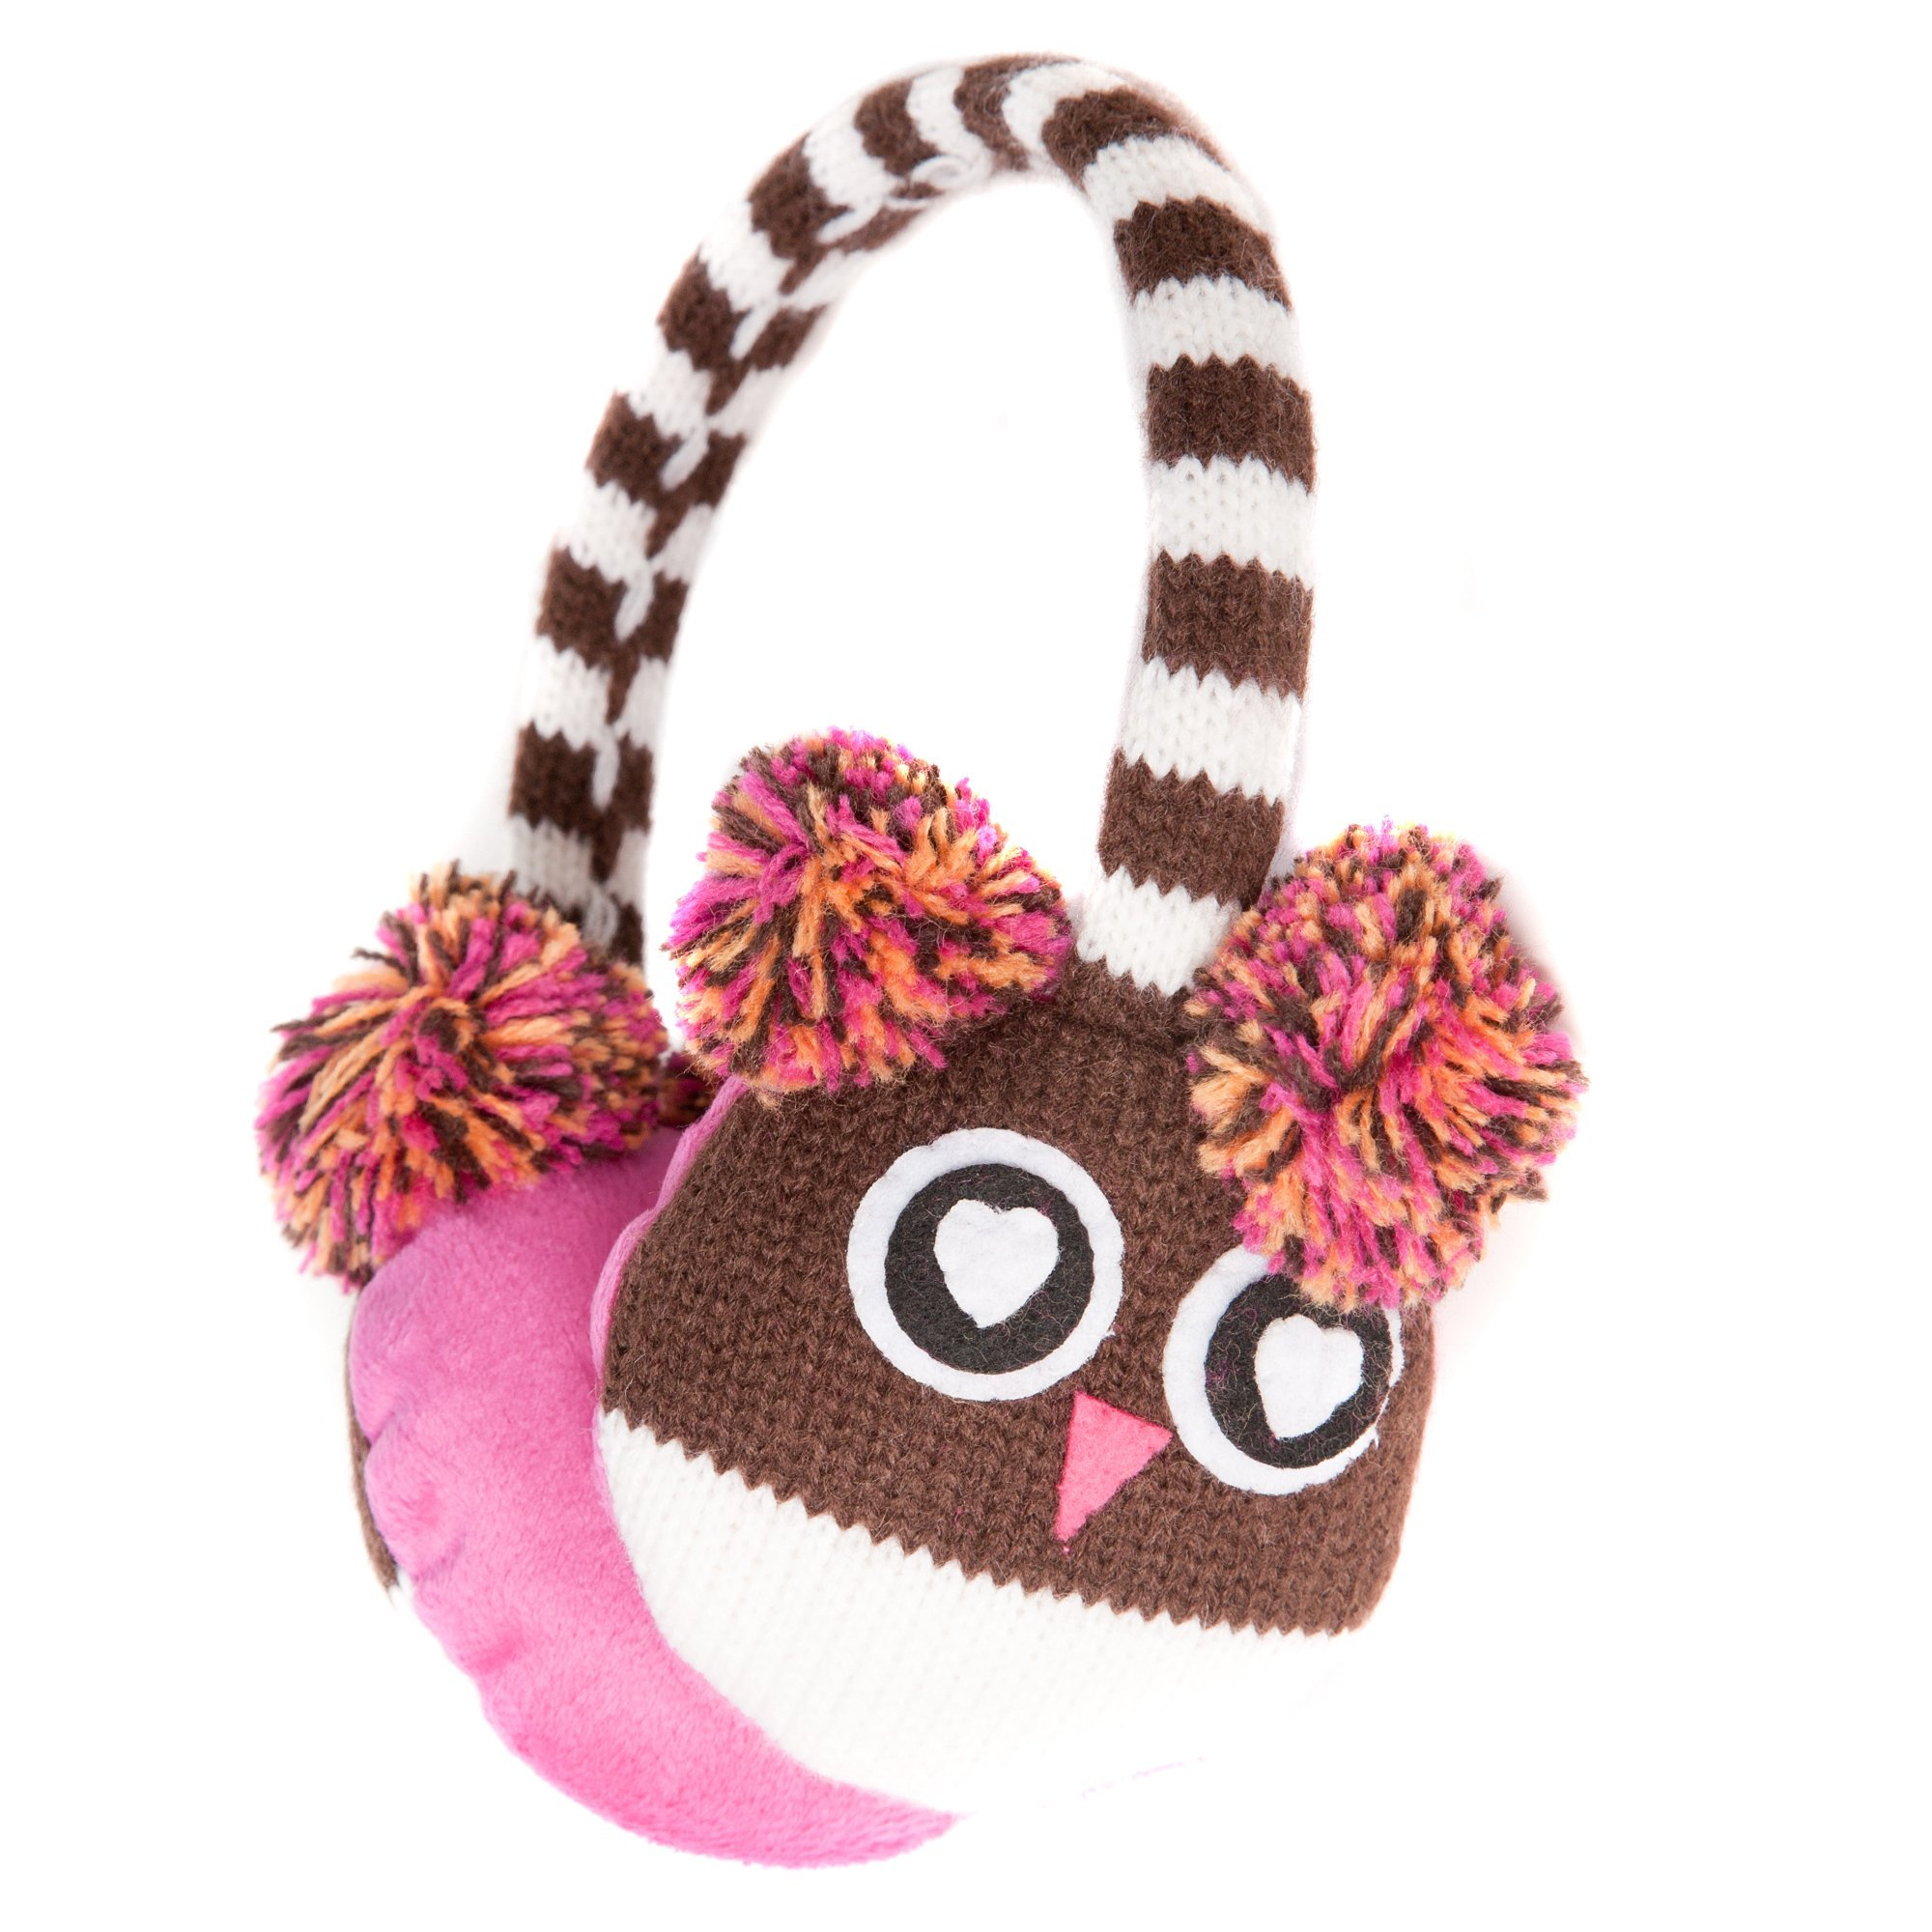 Accessoryo Women's Cute Owl Style Winter Thermal Fashion Earmuffs with Pompom Ears One Size Brown, White and Pink